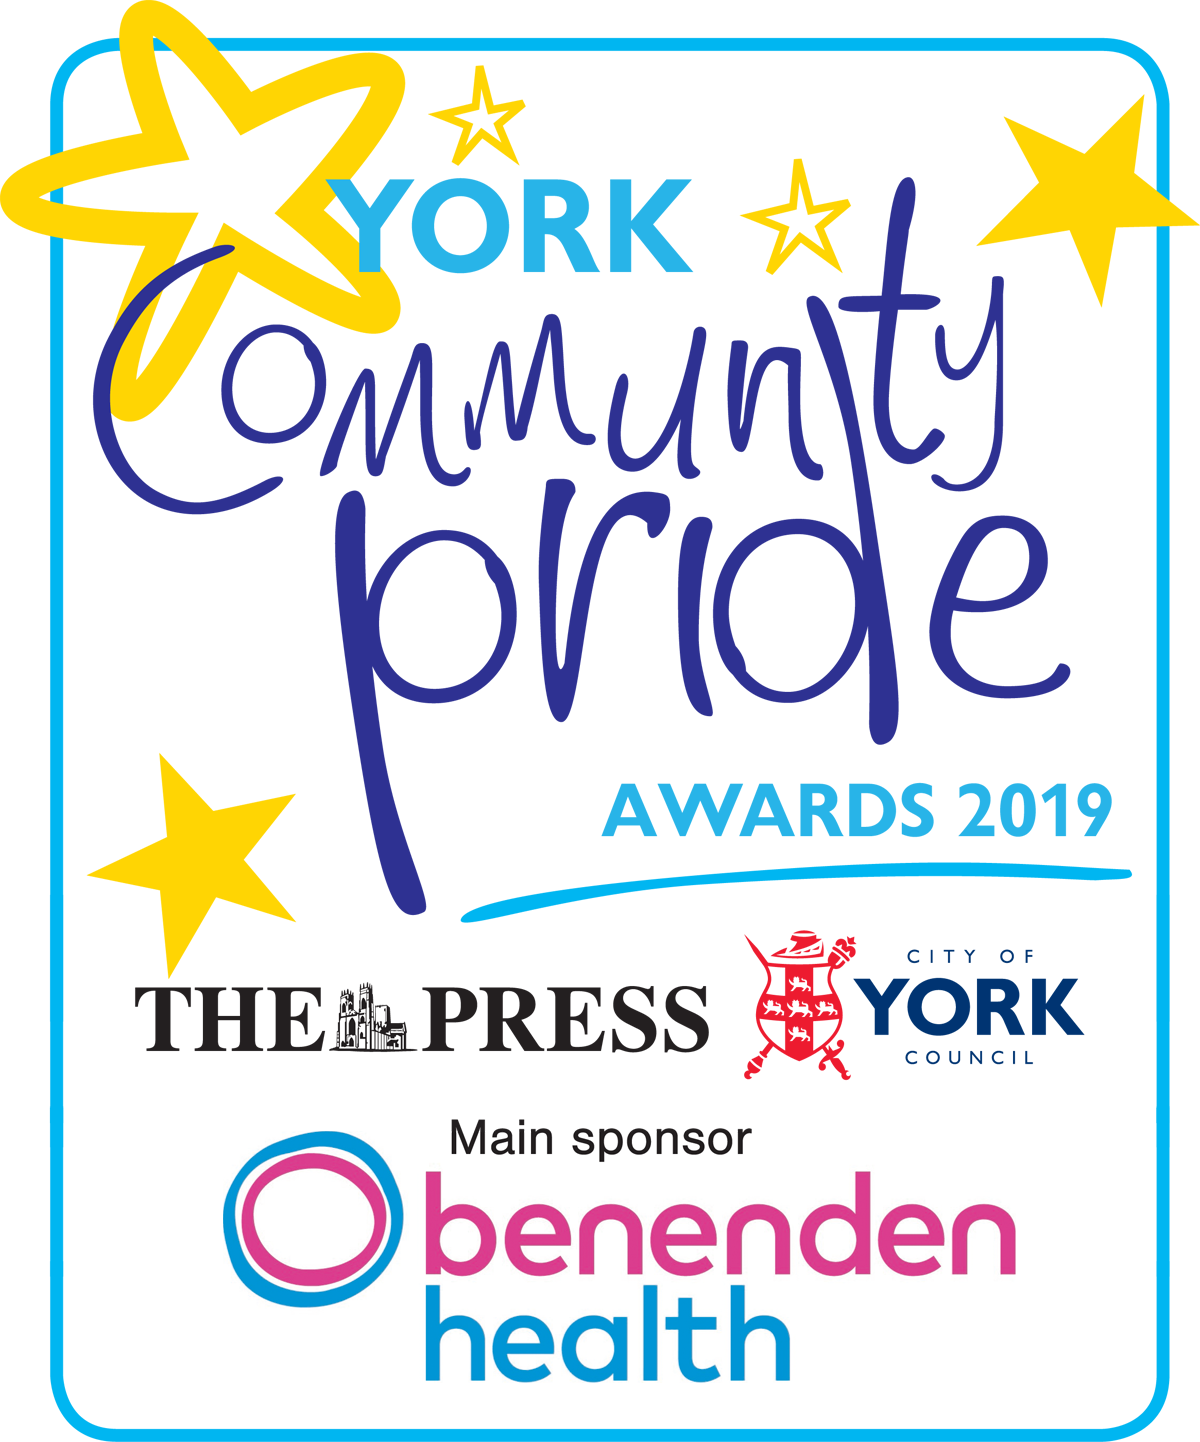 York Press: York Community Pride Awards 2019